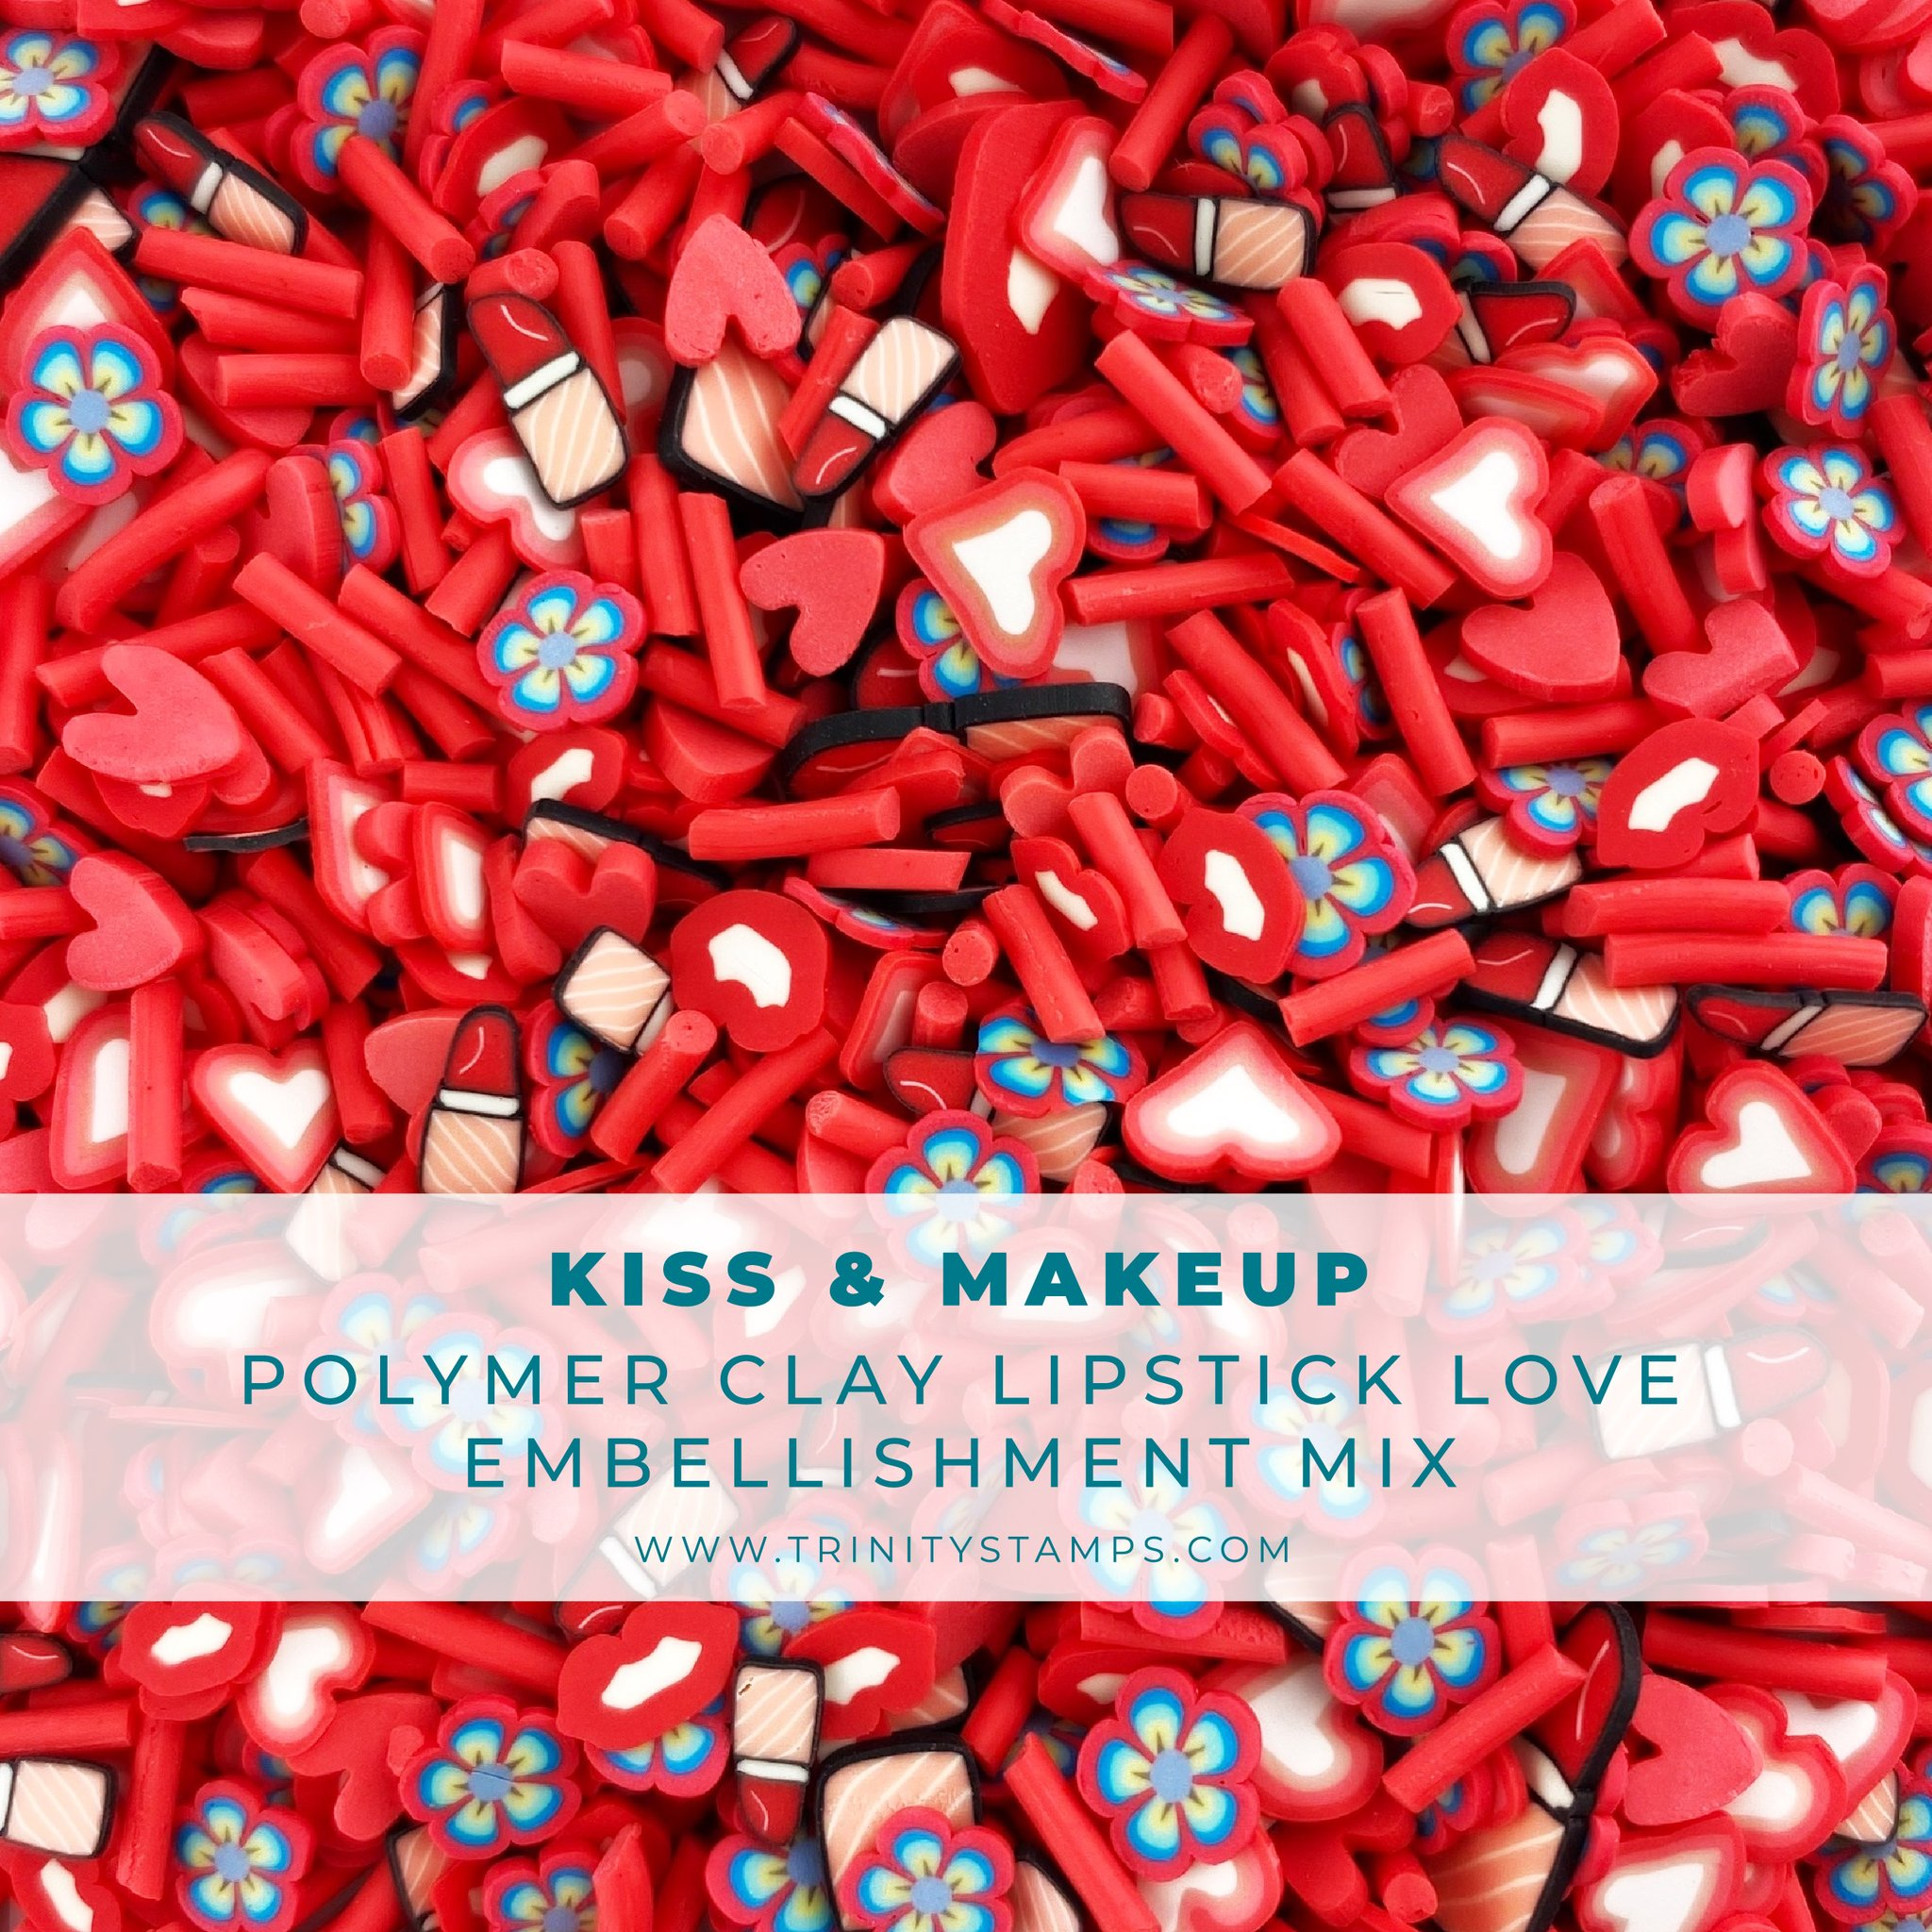 *NEW* - Trinity Stamps - Kiss & Makeup Clay Embellishment Mix